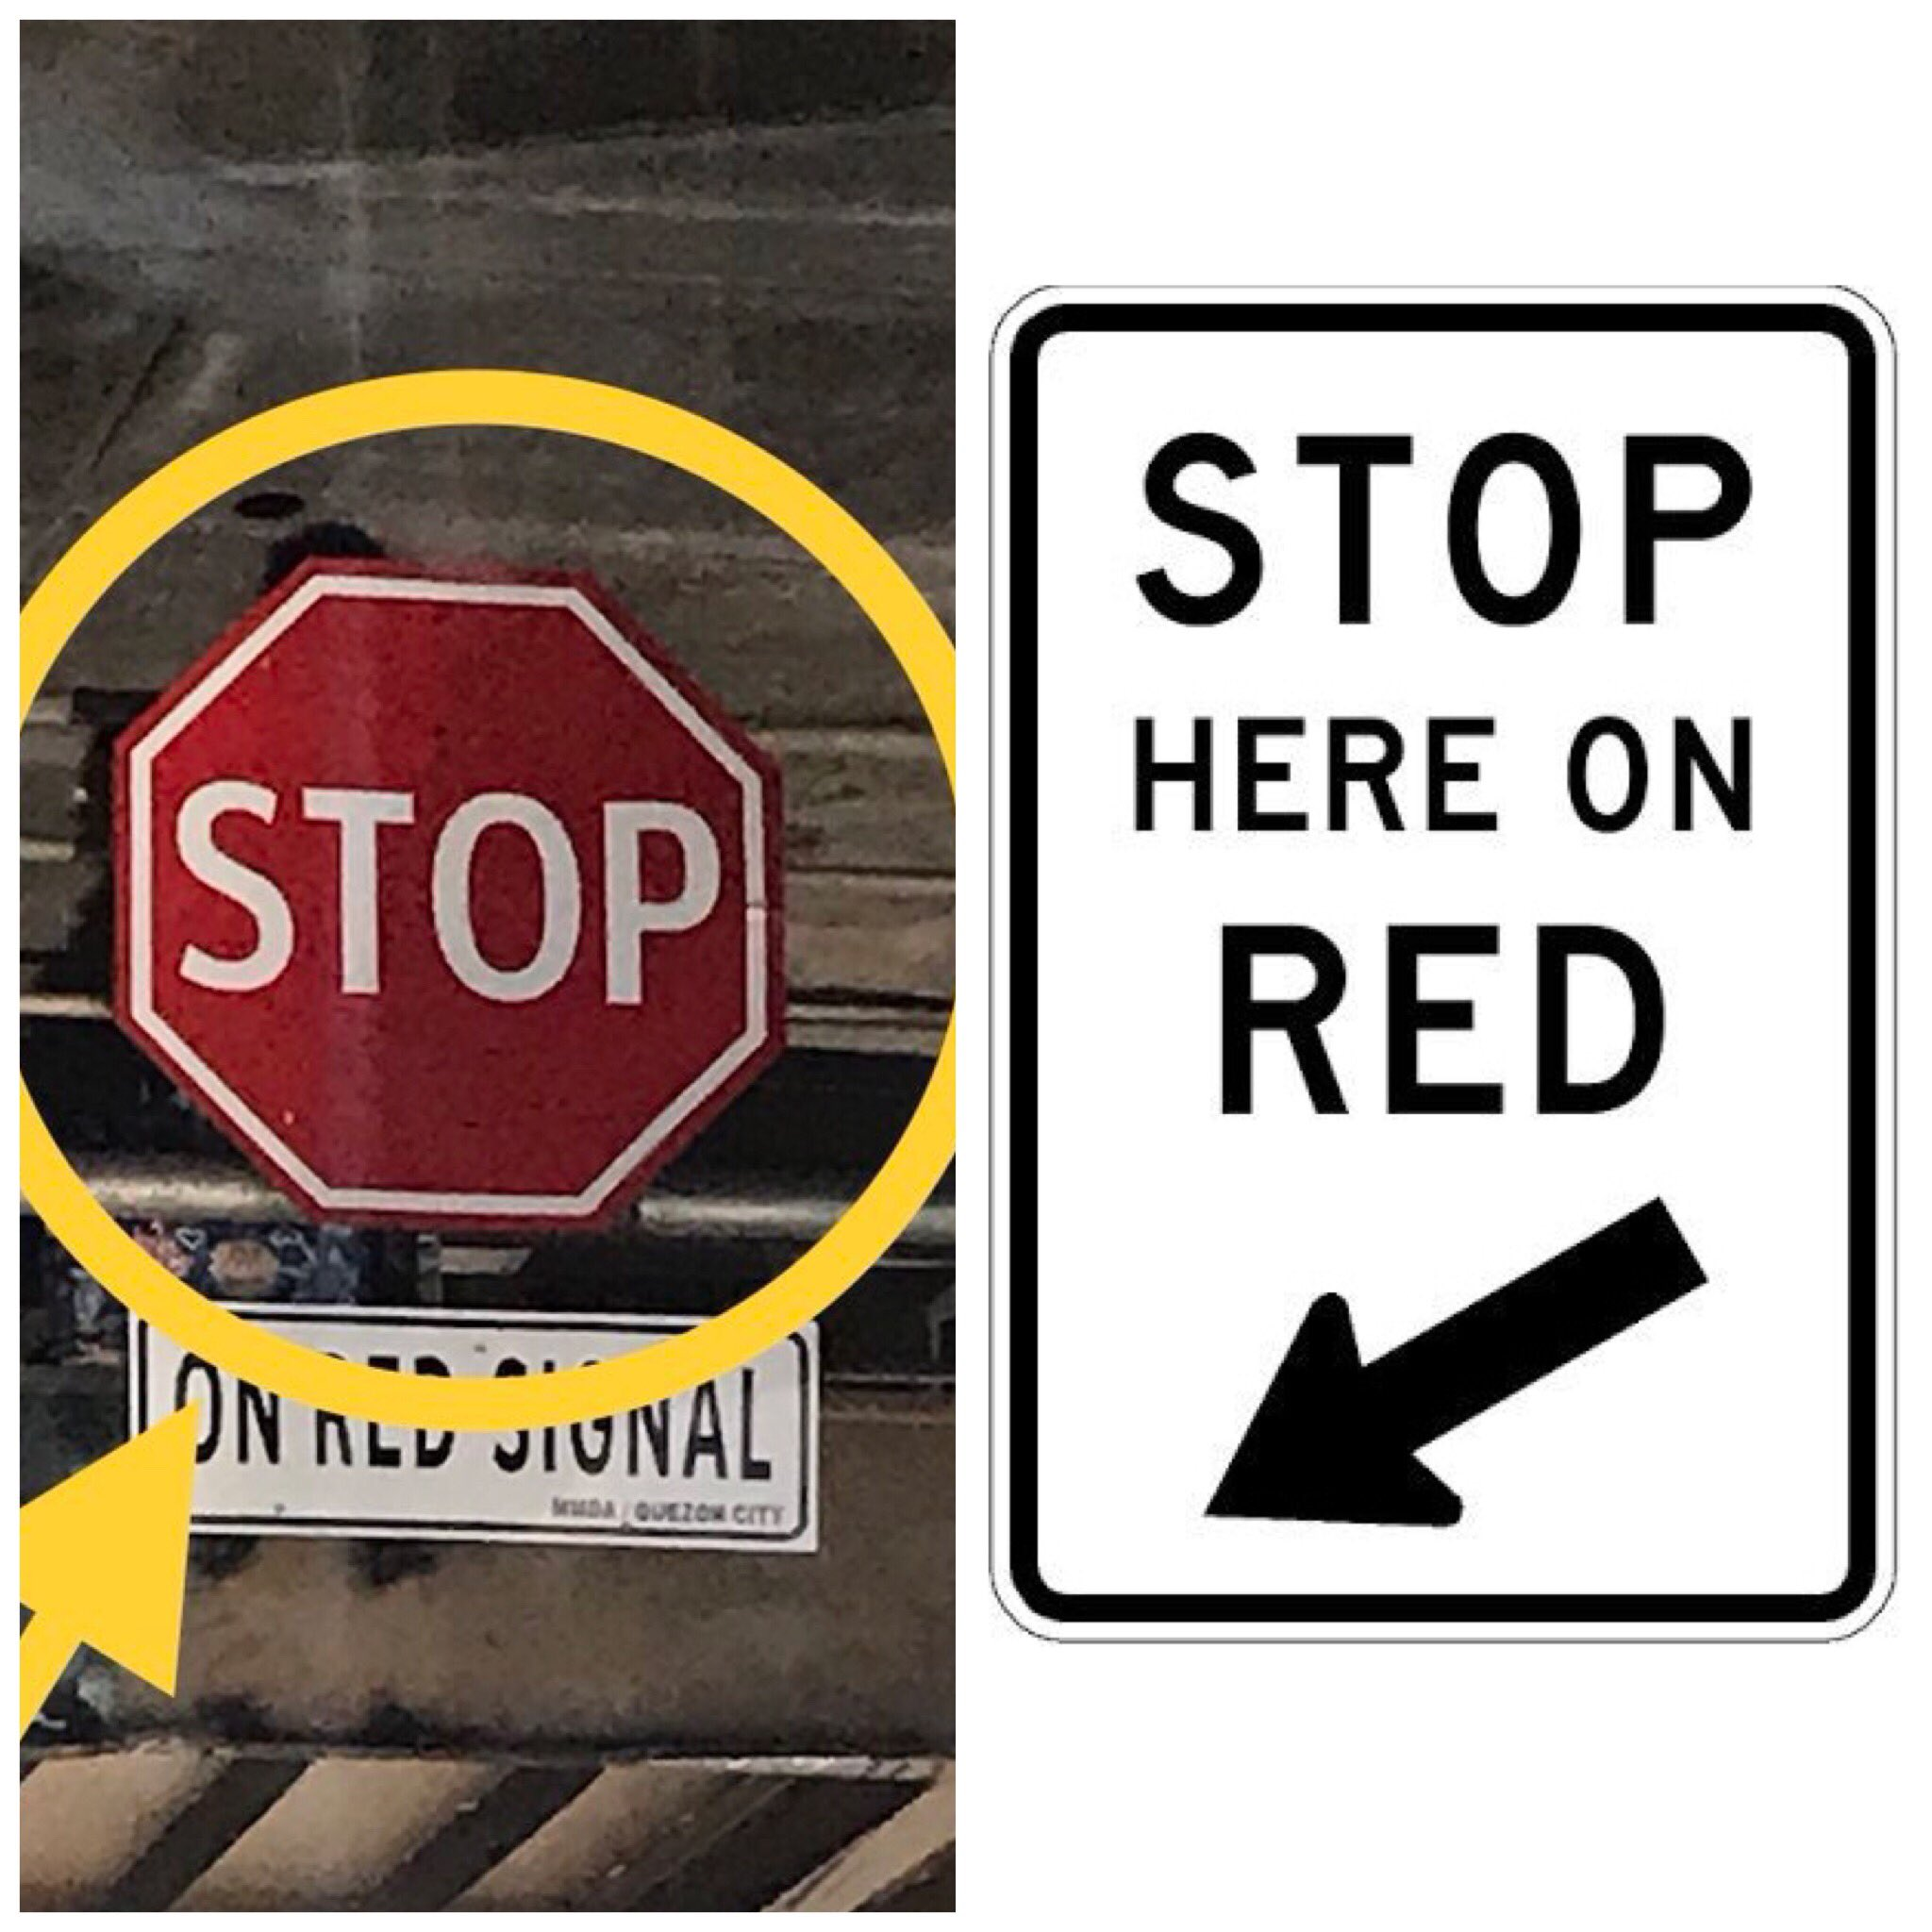 Right Of Way Ph On Twitter The Existence Of A Stop Sign At A Signalized Intersection Causes Confusion If The Intent Is To Show Where To Stop During A Red Light You